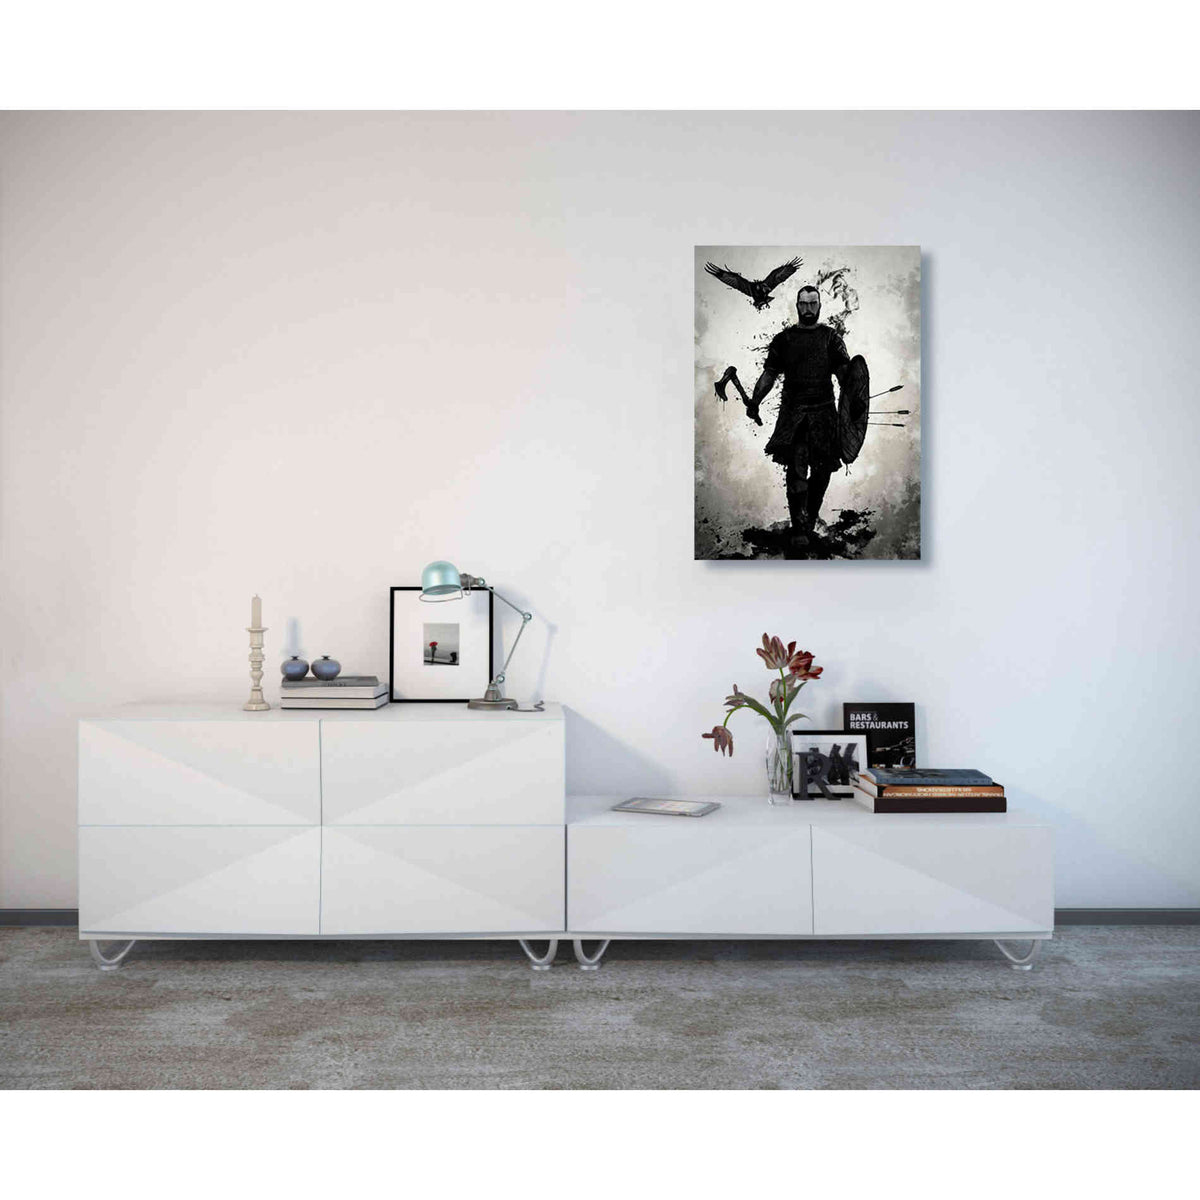 Cortesi Home 'To Valhalla' by Nicklas Gustafsson, Canvas Wall Art